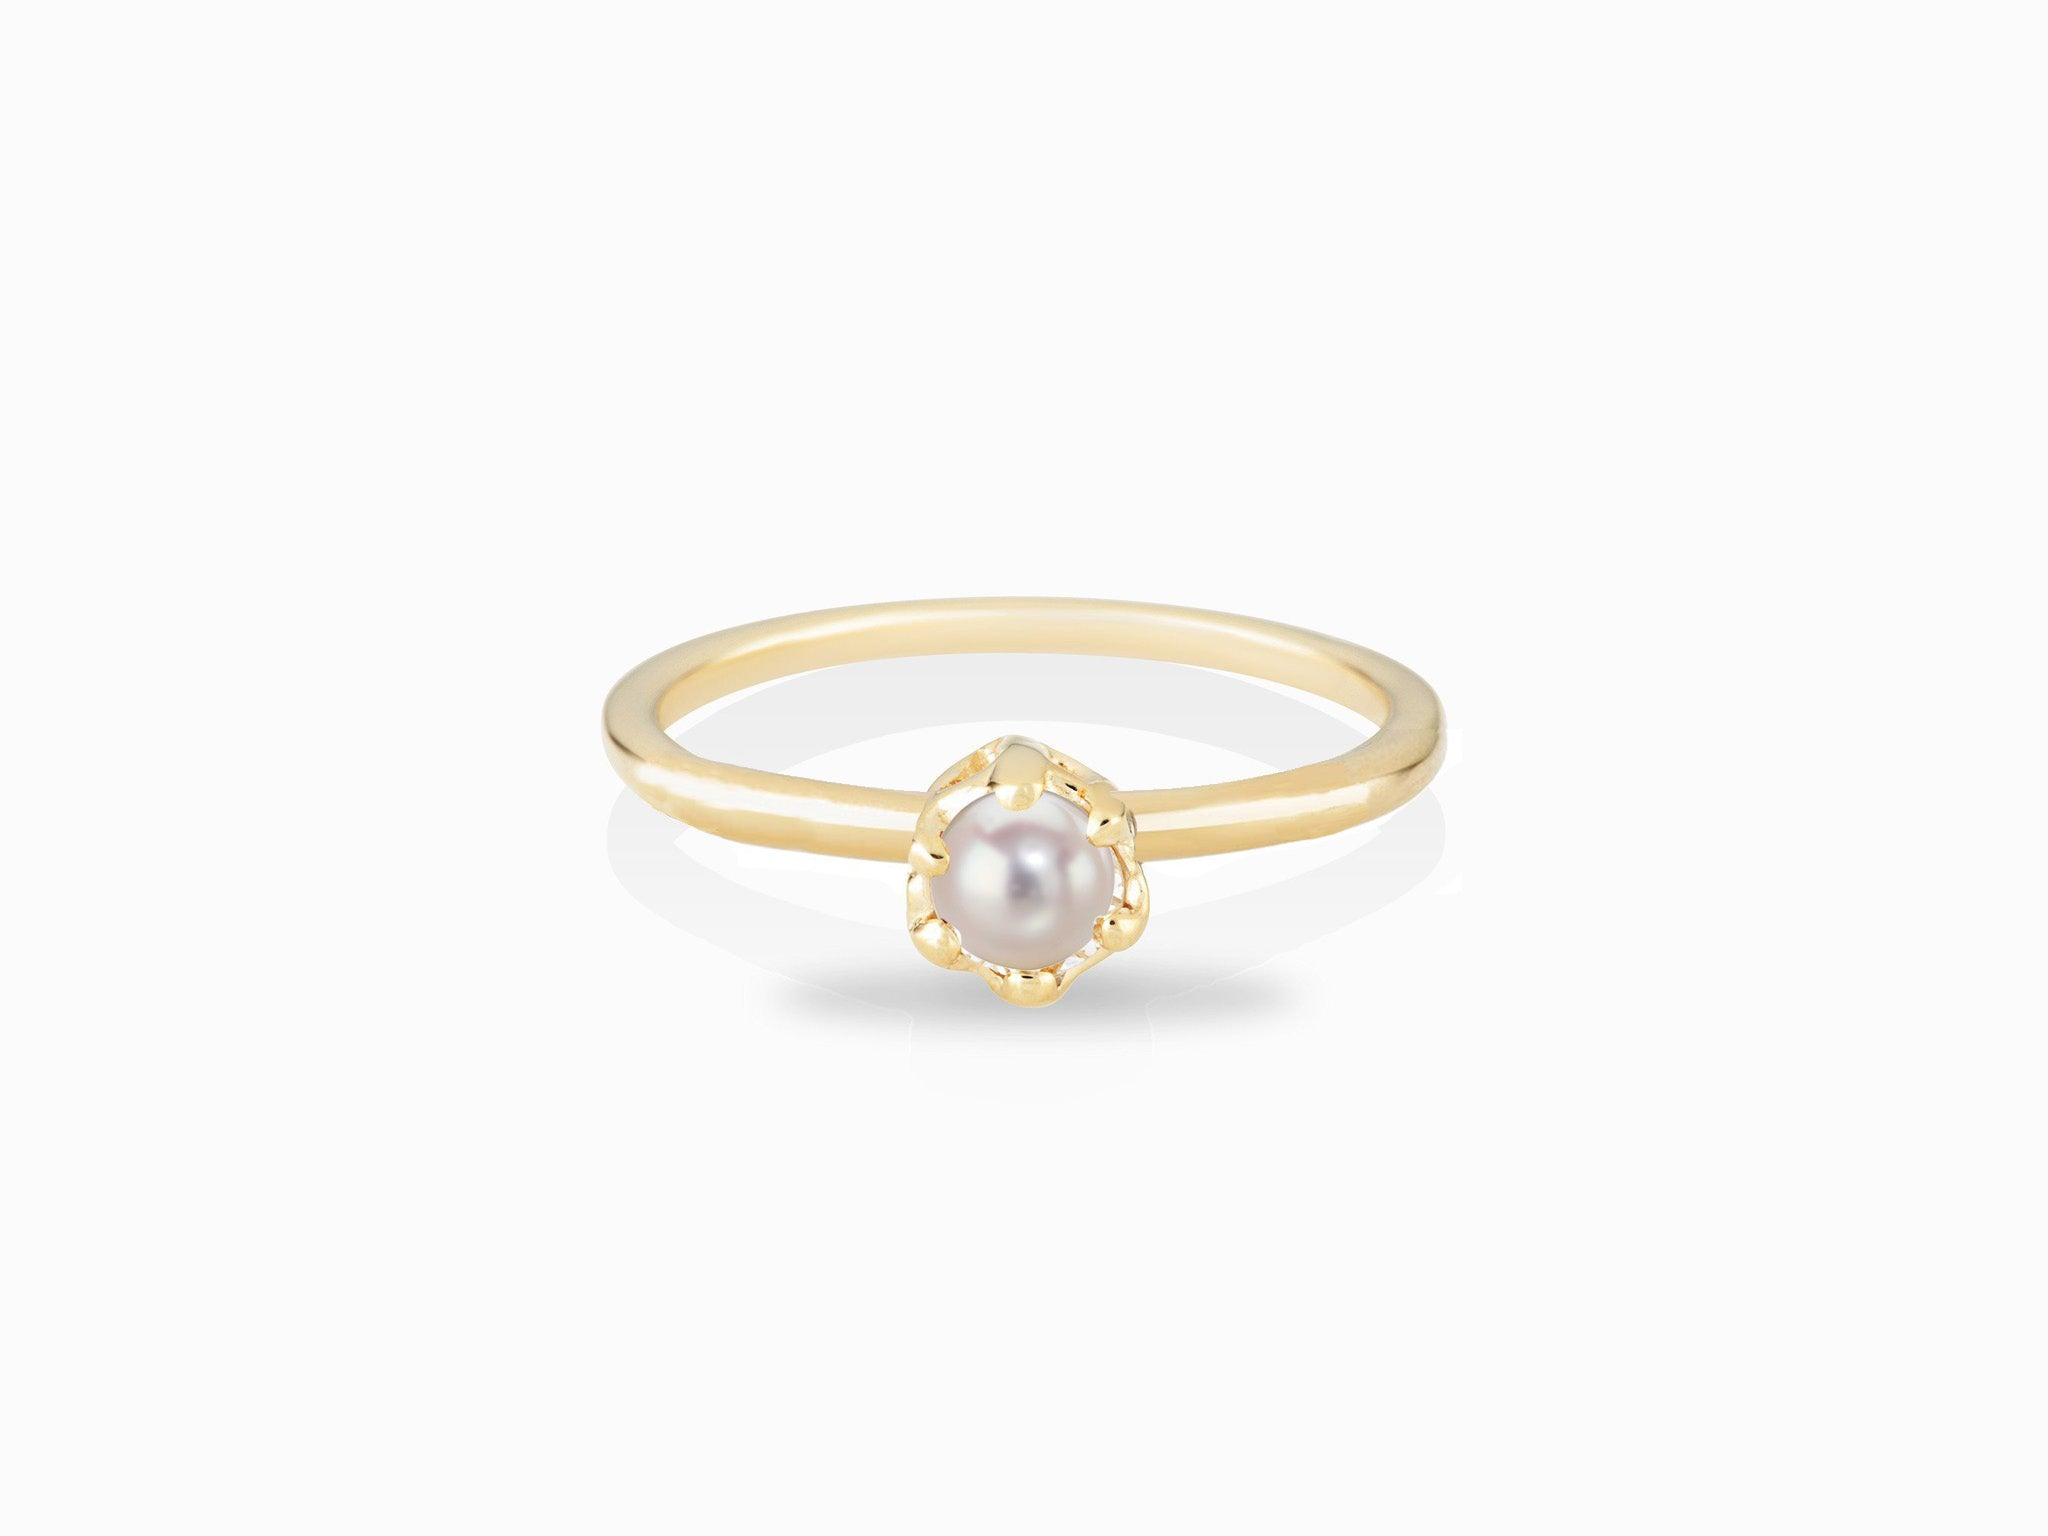 Entity Solitaire Ring 'Limited Release'